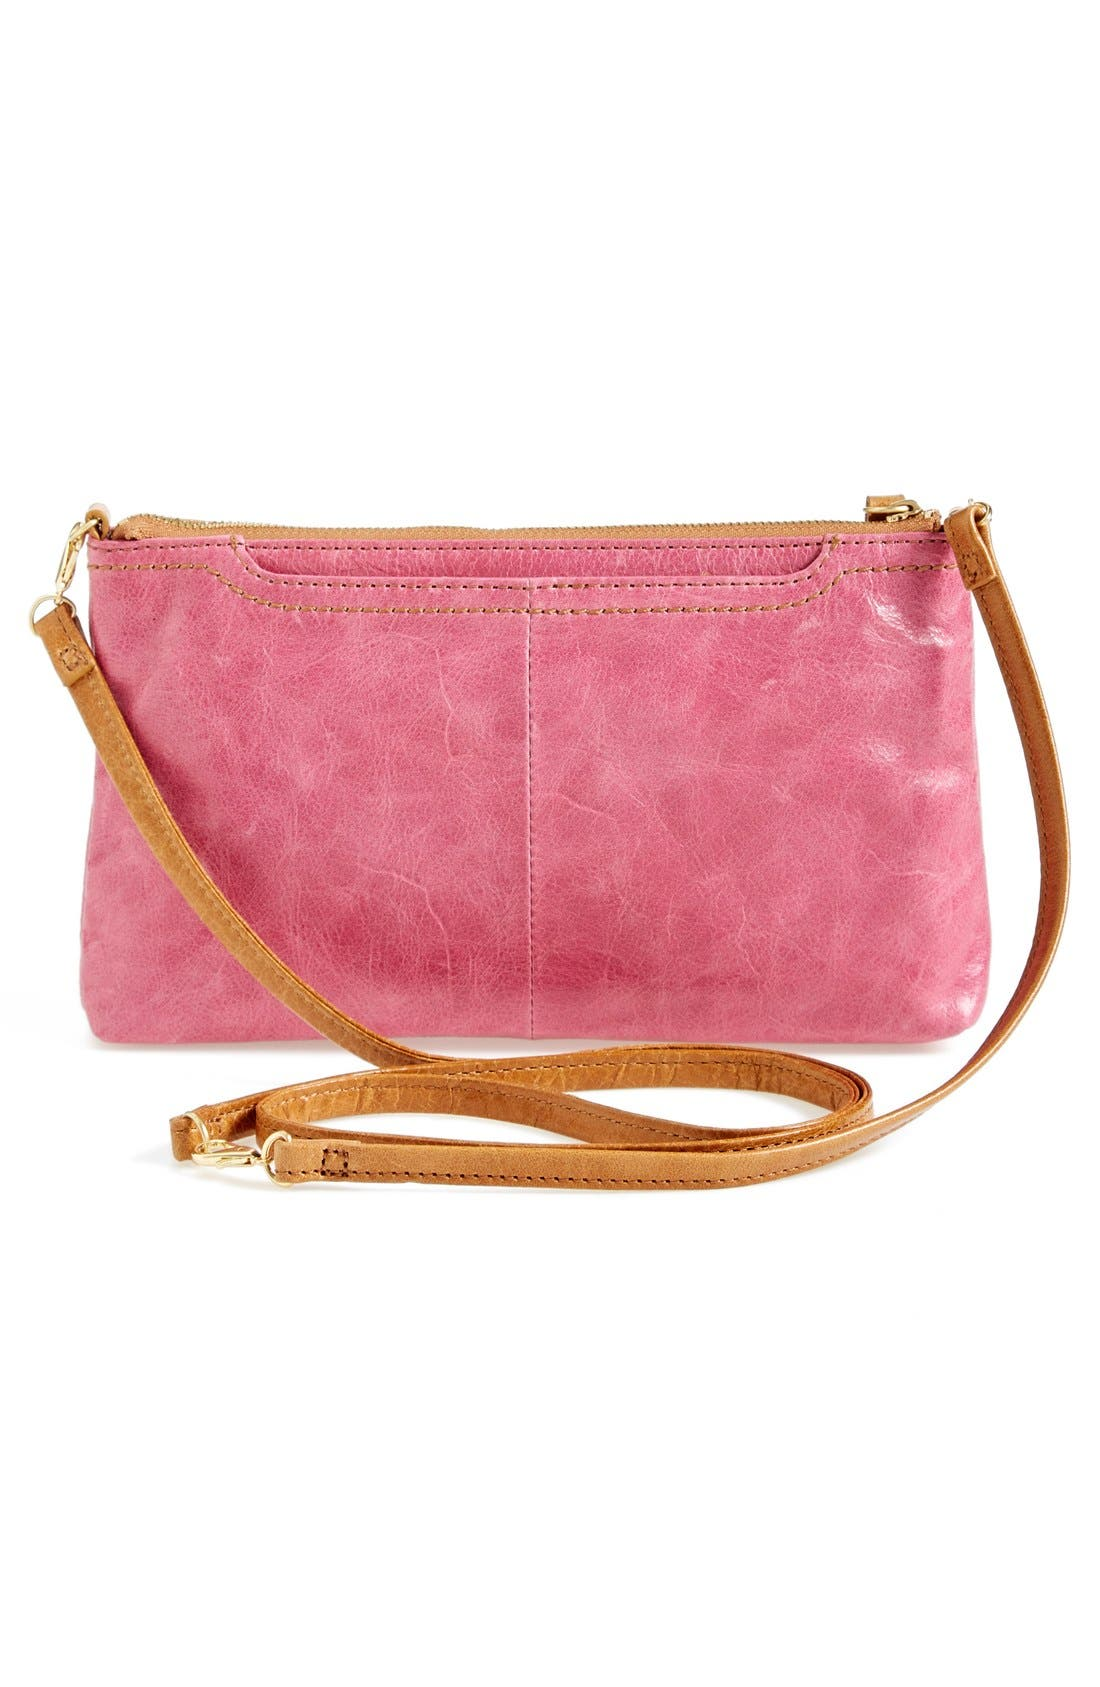 'Darcy' Leather Crossbody Bag,                             Alternate thumbnail 109, color,